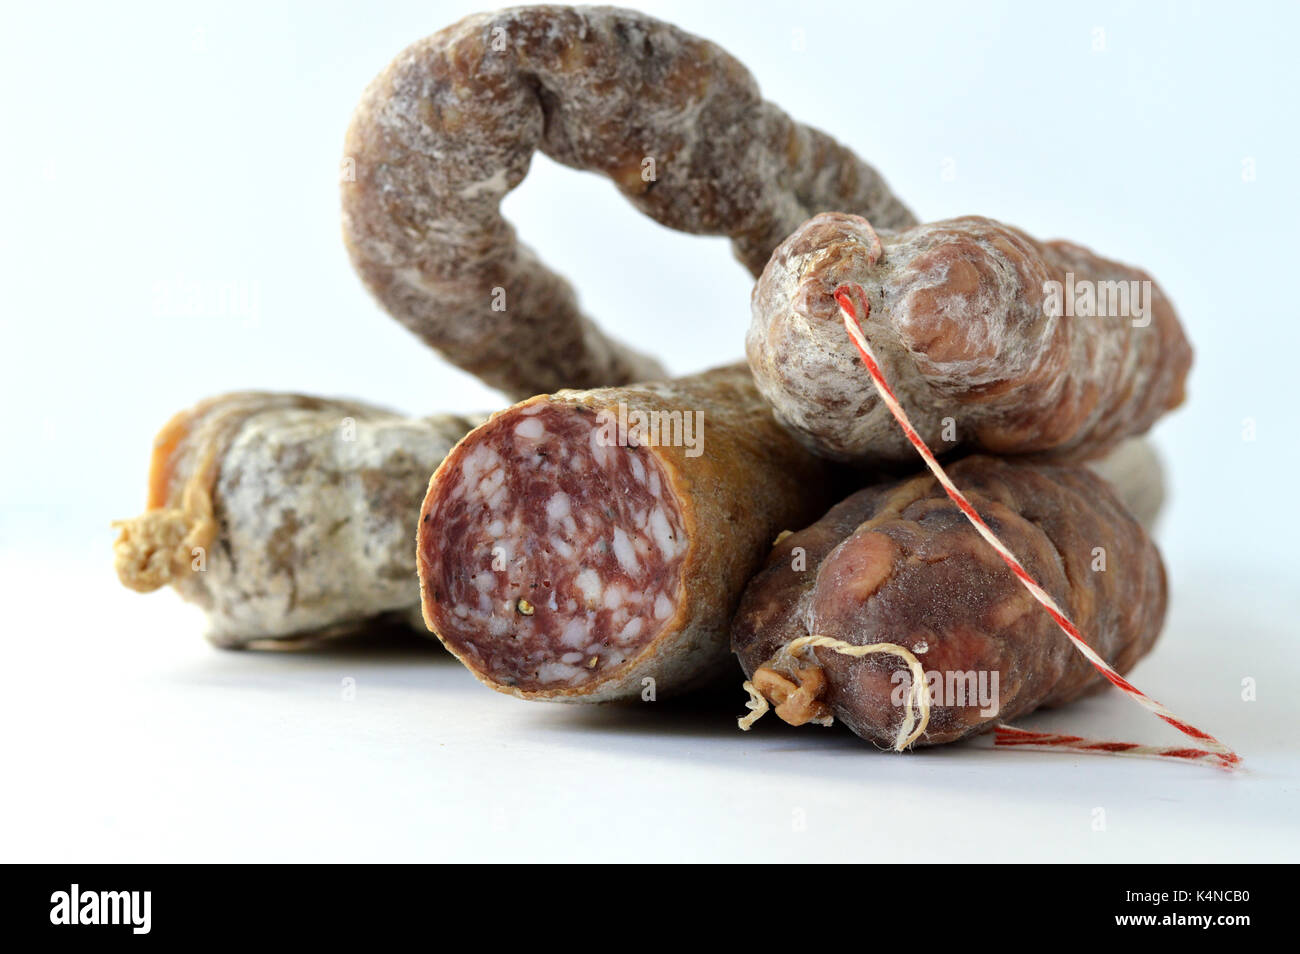 An assortment of French charcuterie. Sausage. - Stock Image